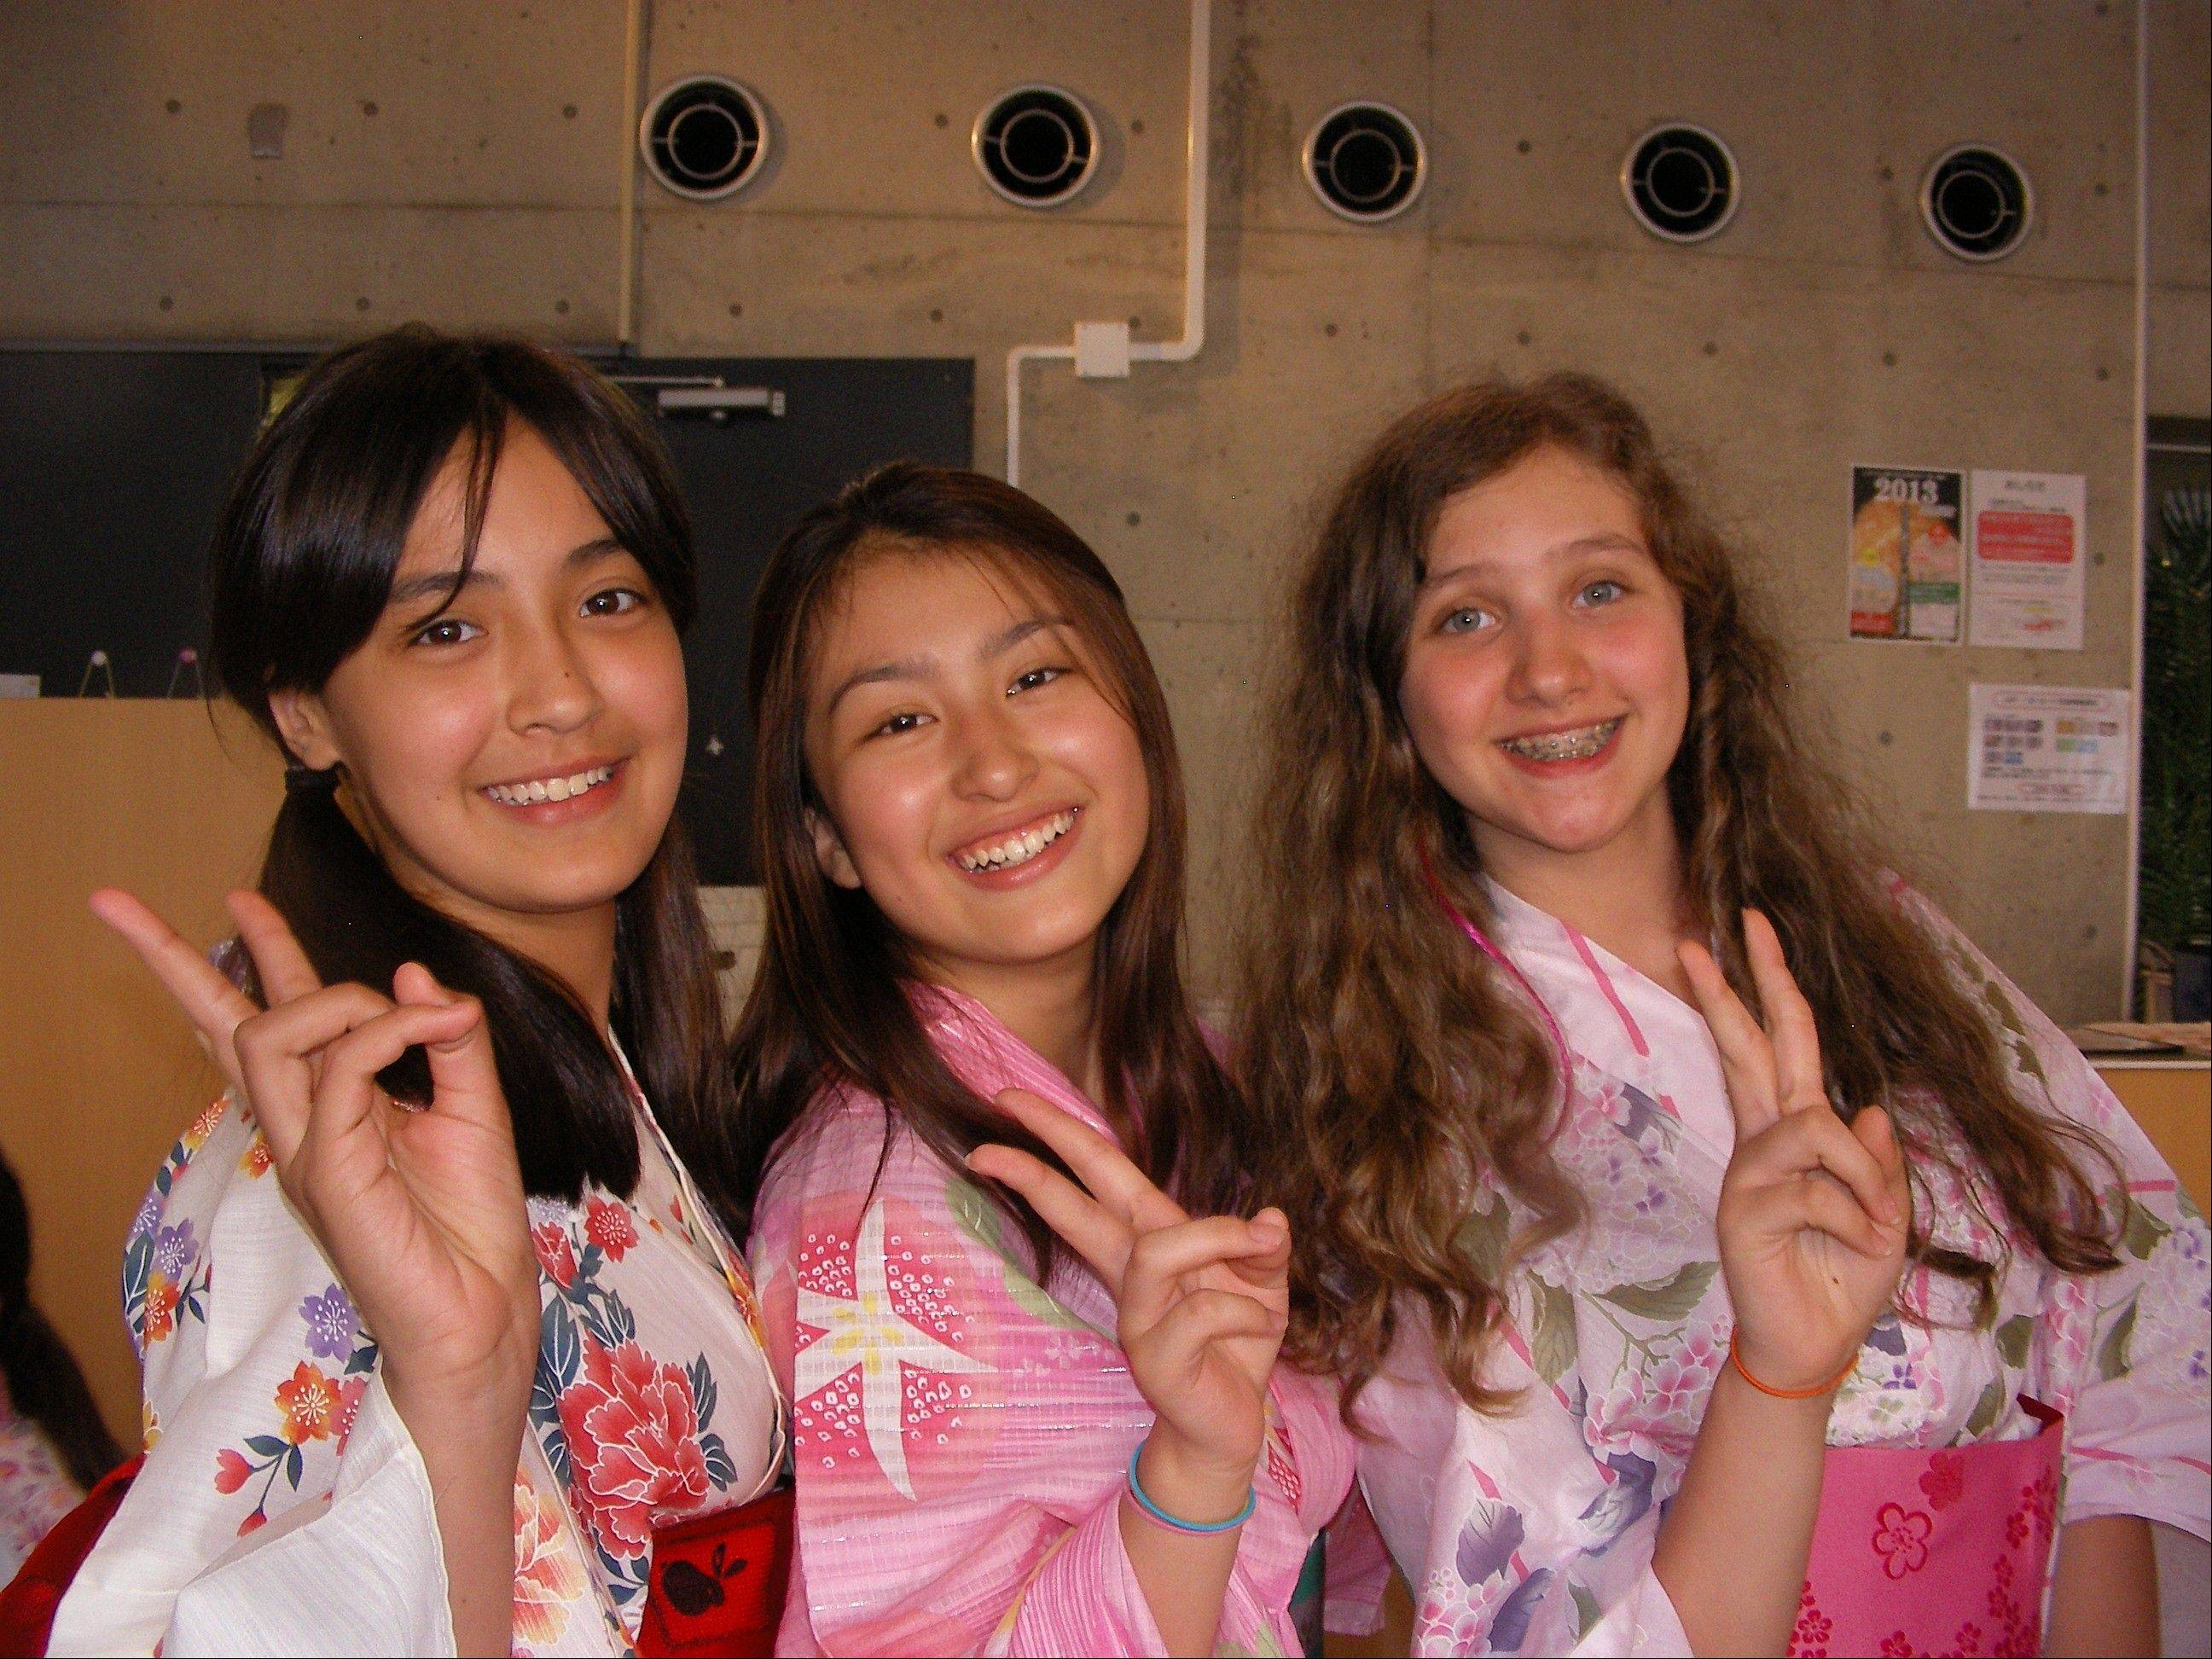 Girls are in summer yukatas. From left to right, Emma Rogers, Erica Ross and Amanya Meir.